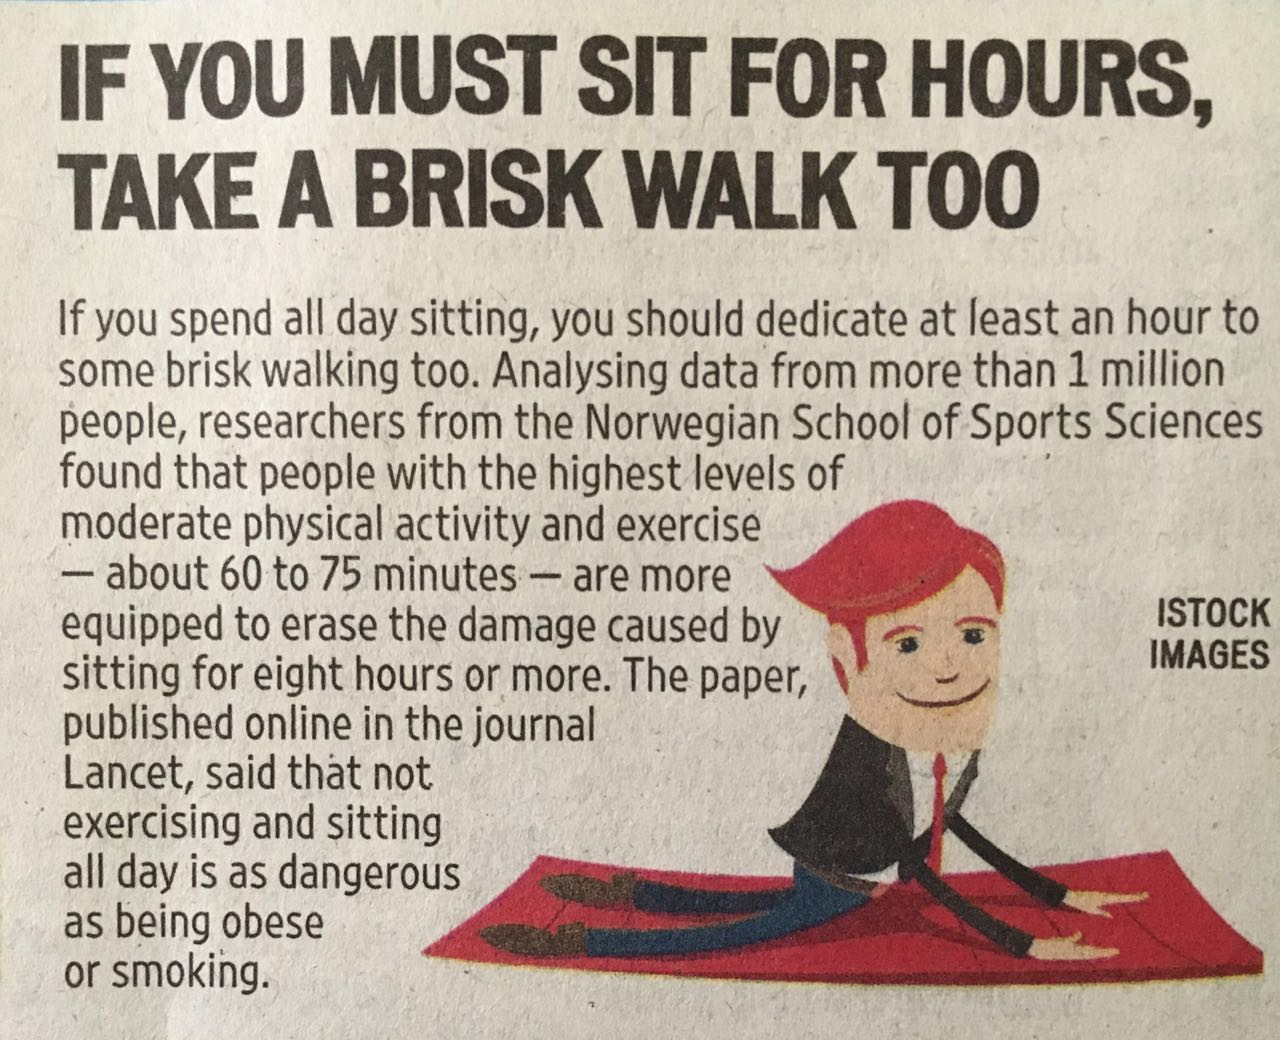 Want to live longer? Sitting more may result in living less, so move more